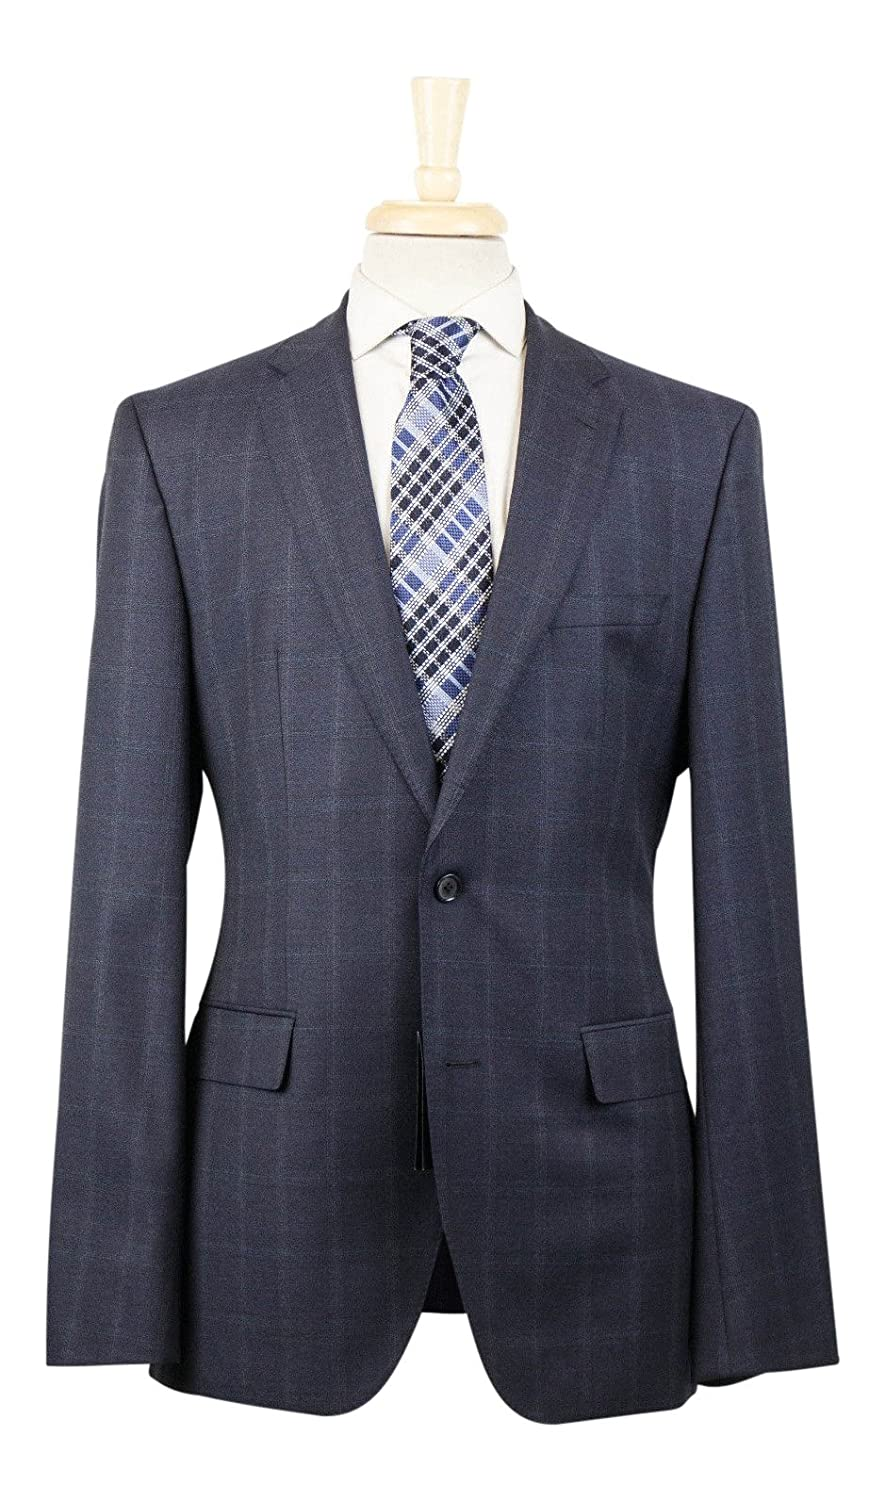 01414da8b9 HUGO BOSS BOSS BOSS Navy blueee Windowpane Wool 2 Button Suit Size 50 40 L  8f72d0